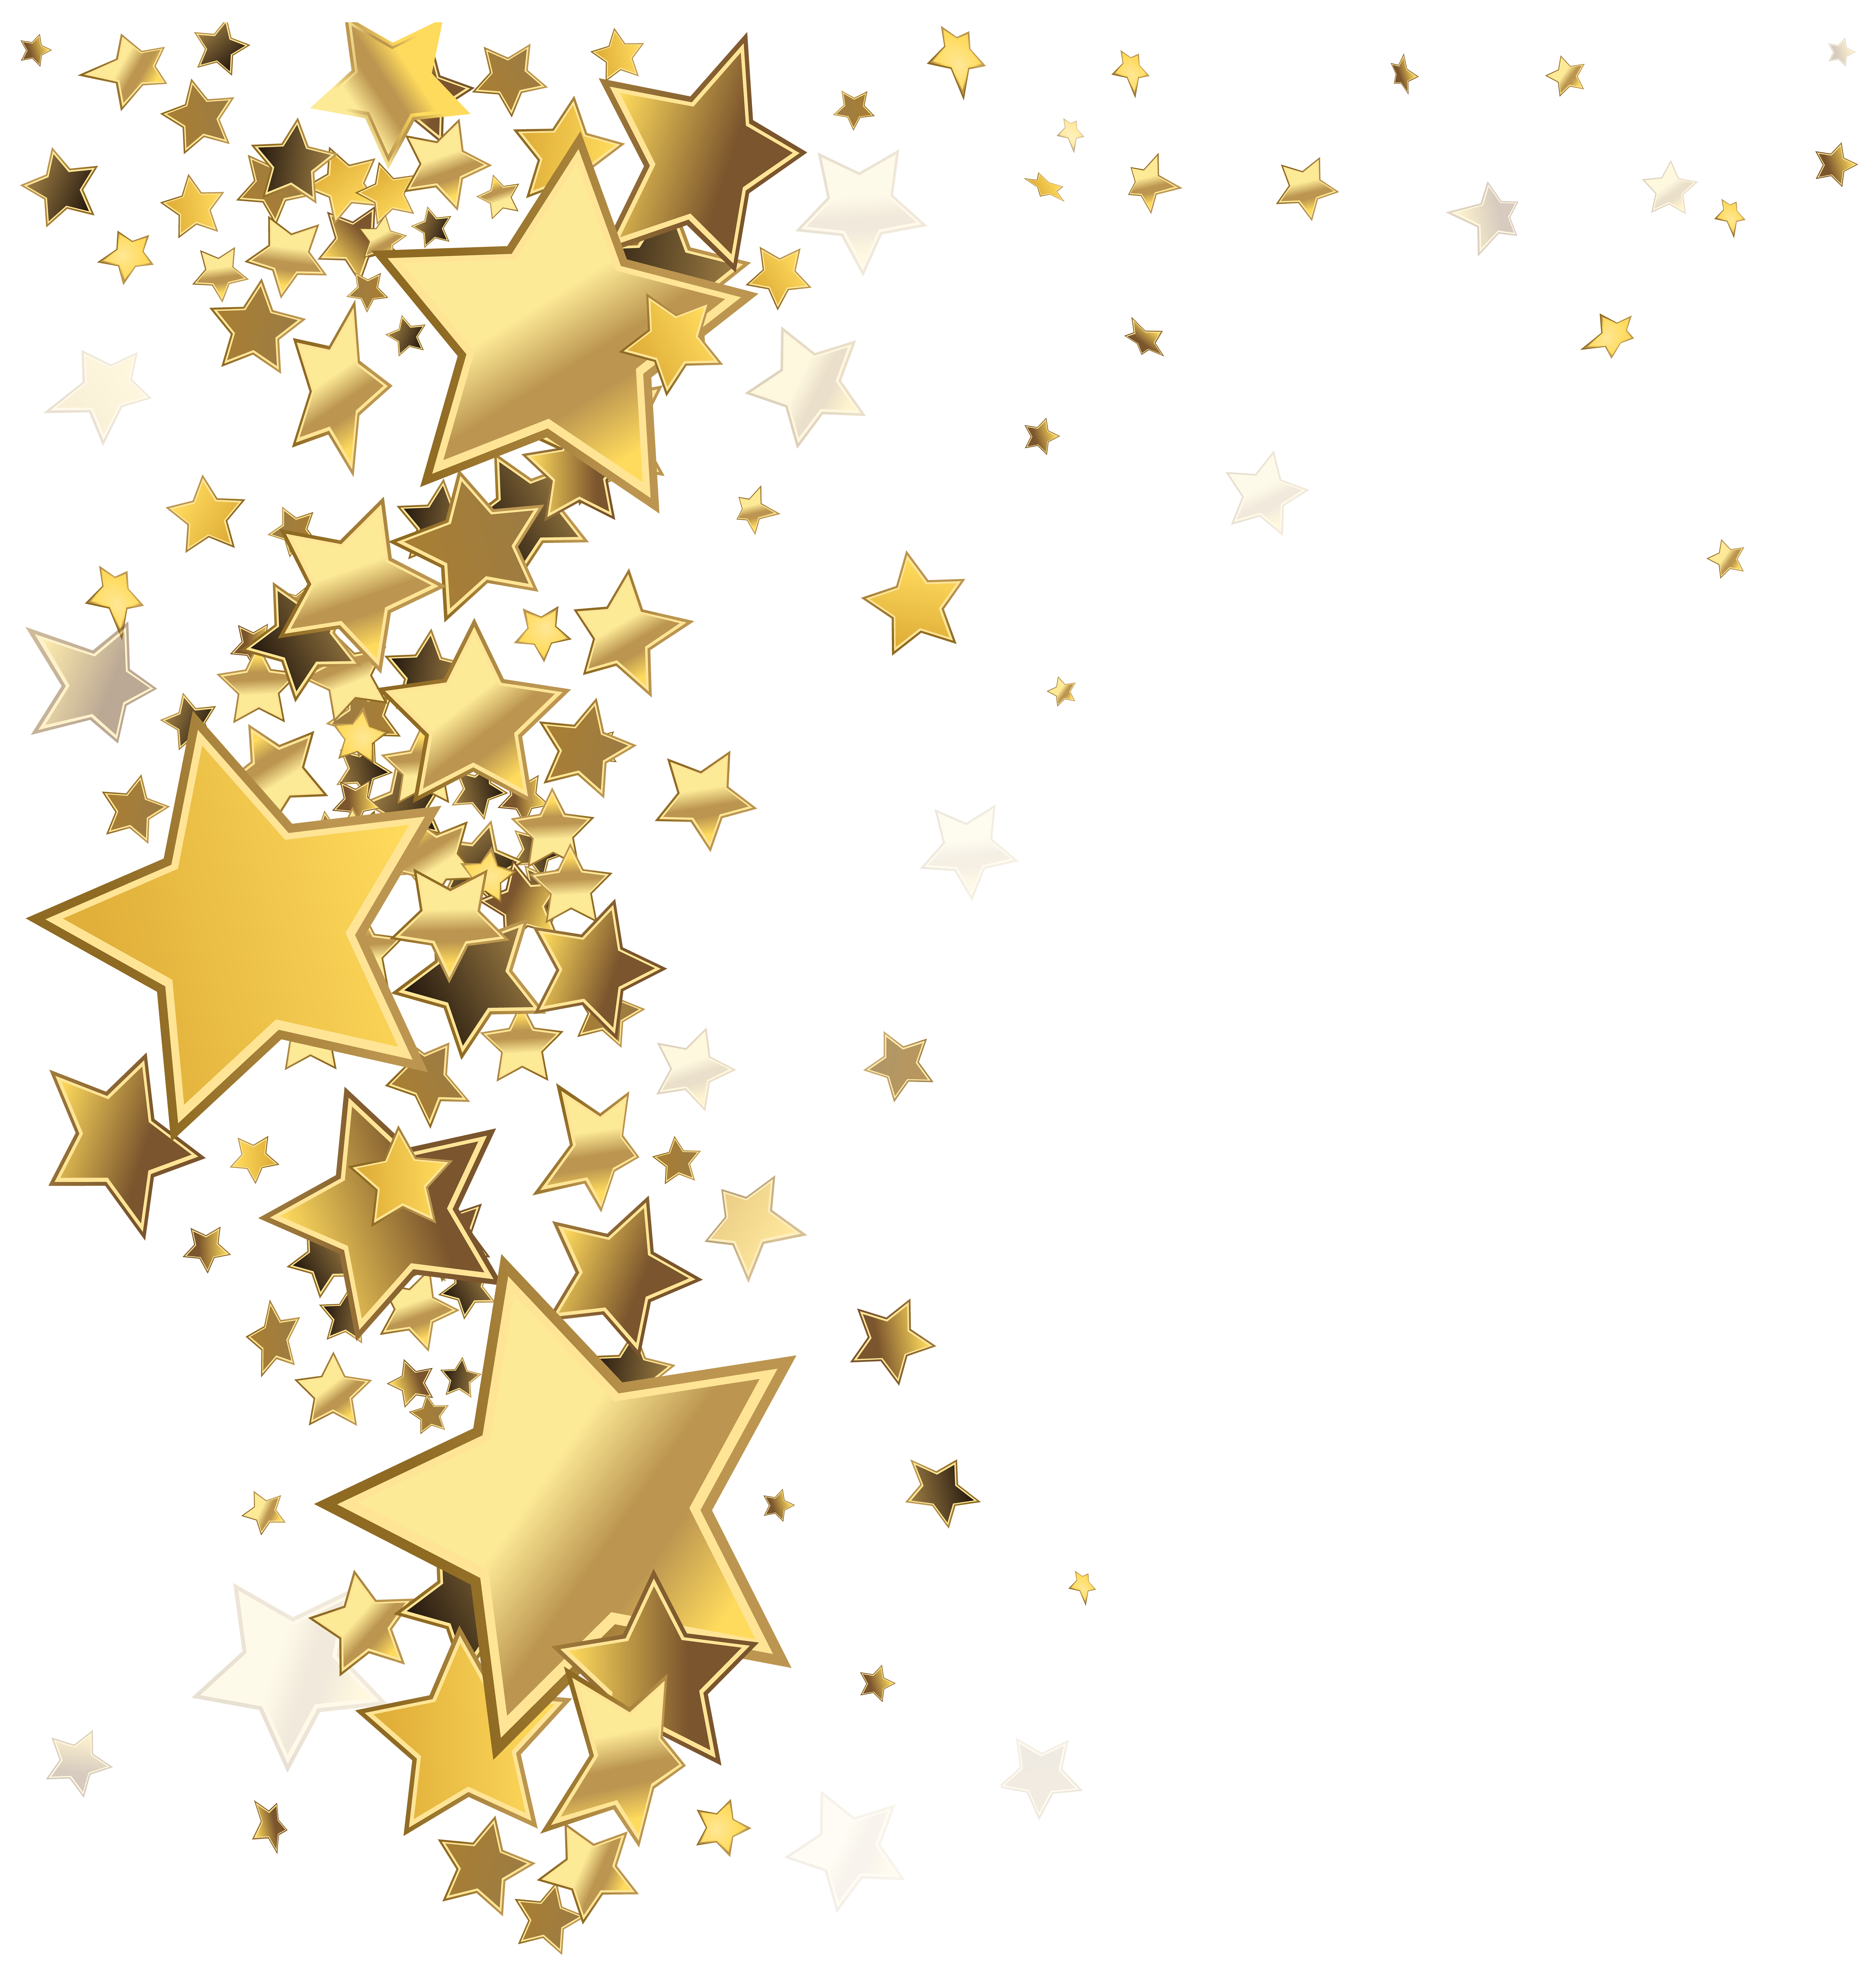 Stars Decoration Png Clip Art Image Gallery Yopriceville High Quality Images And Transparent Png Star Decorations Clip Art Cherry Blossom Painting Acrylic